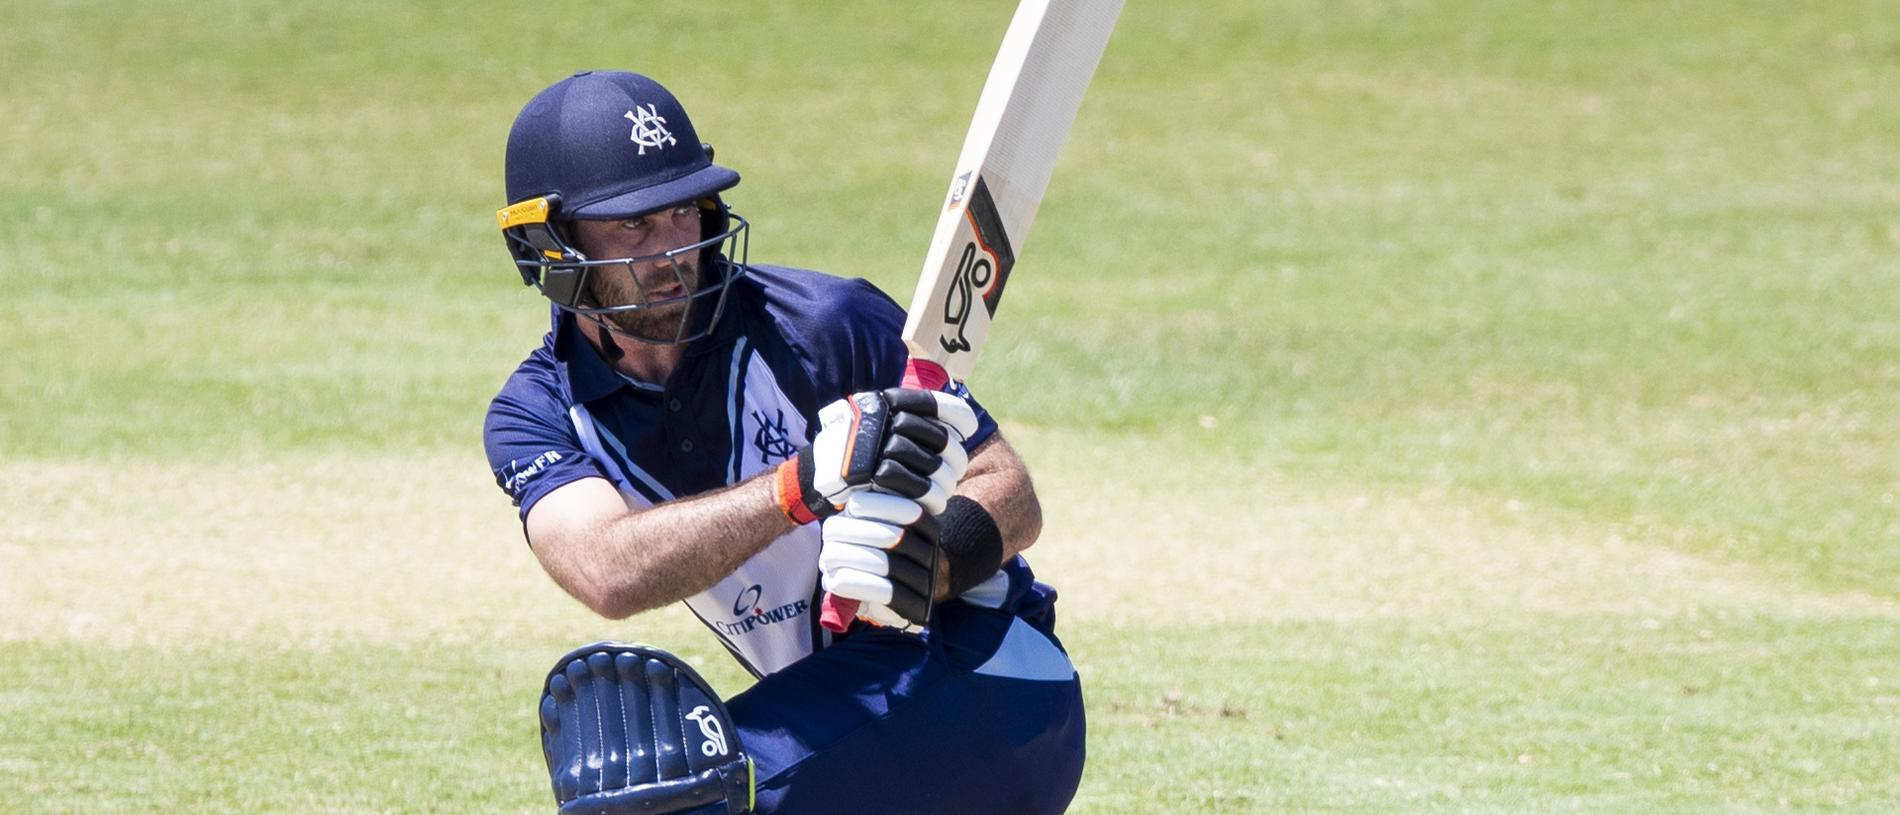 Glenn Maxwell of the Victoria plays a shot to bring up his half century during the JLT One-Day Cup match between Queensland and Victoria at Riverway Stadium, Townsville, Sunday, September 16, 2018, (AAP Image/Dave Acree) NO ARCHIVING, EDITORIAL USE ONLY